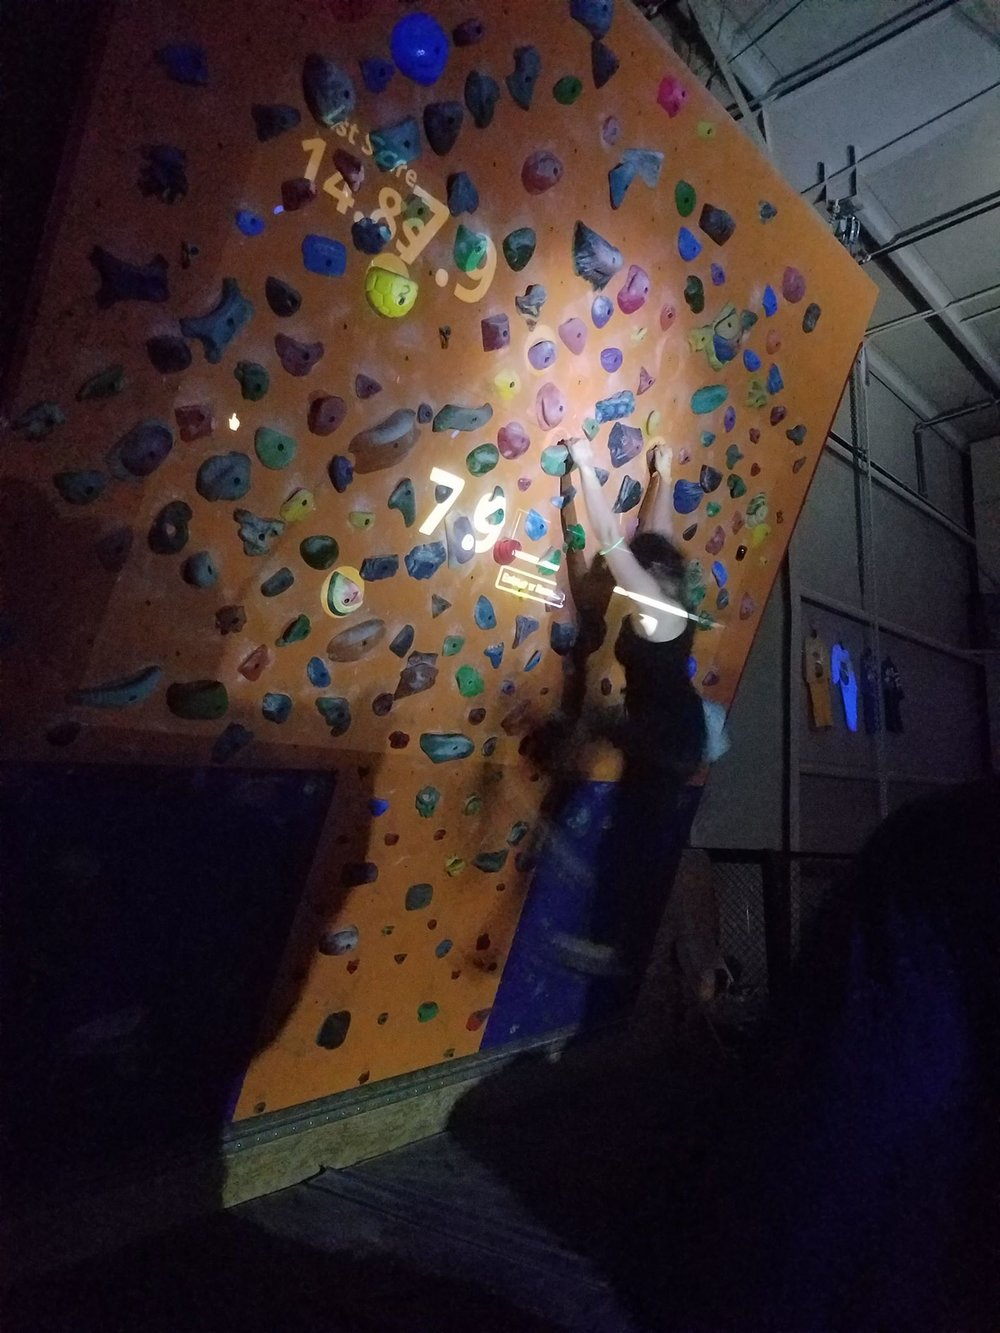 A new feature of the Halloween Blacklight Party: augmented reality bouldering!